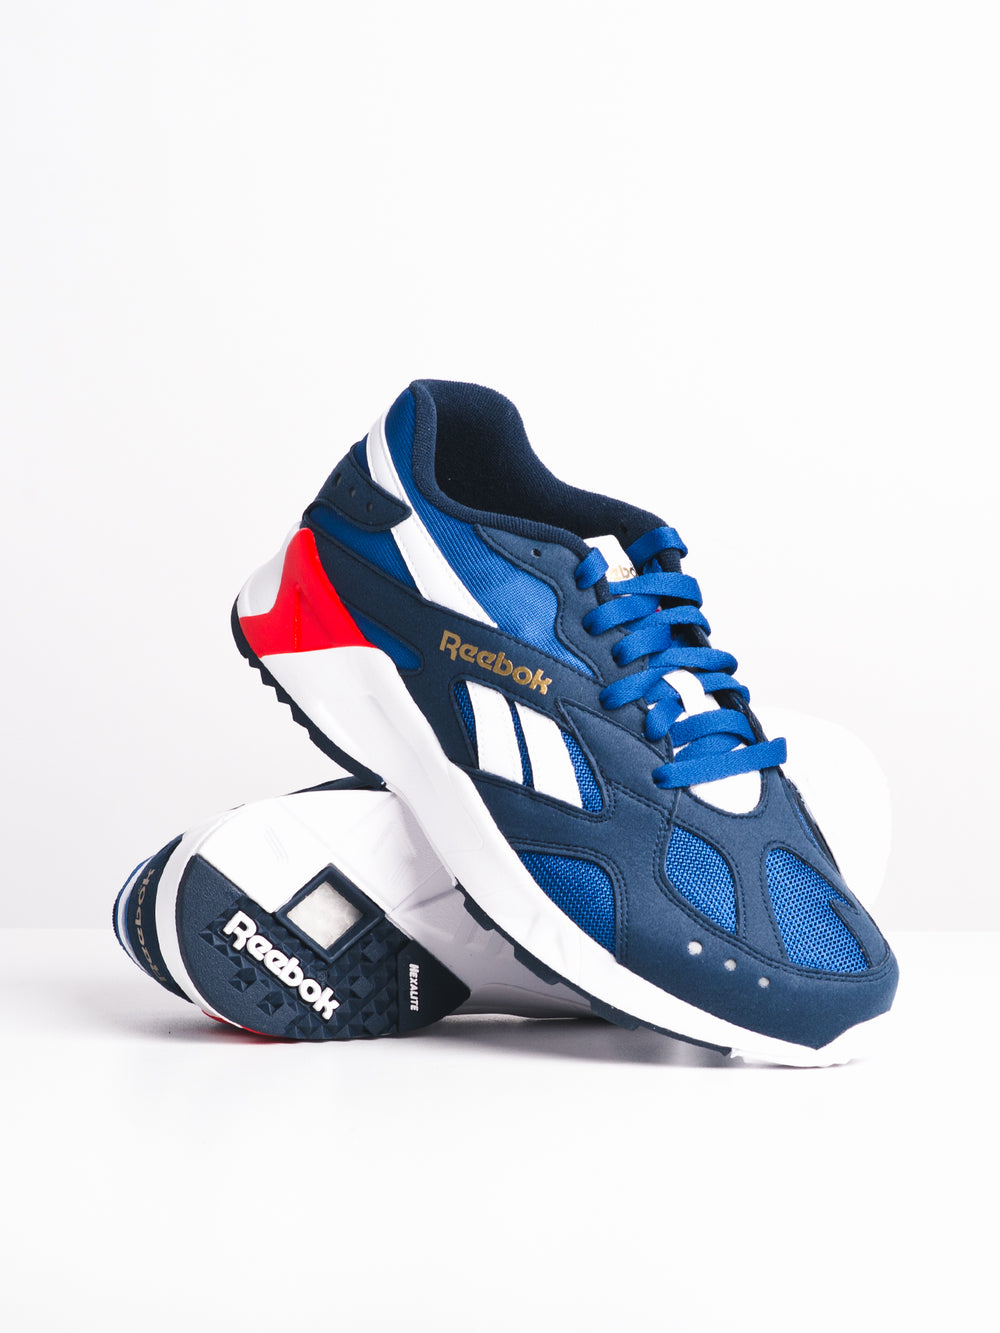 MENS AZTREK - NAVY/ROYAL